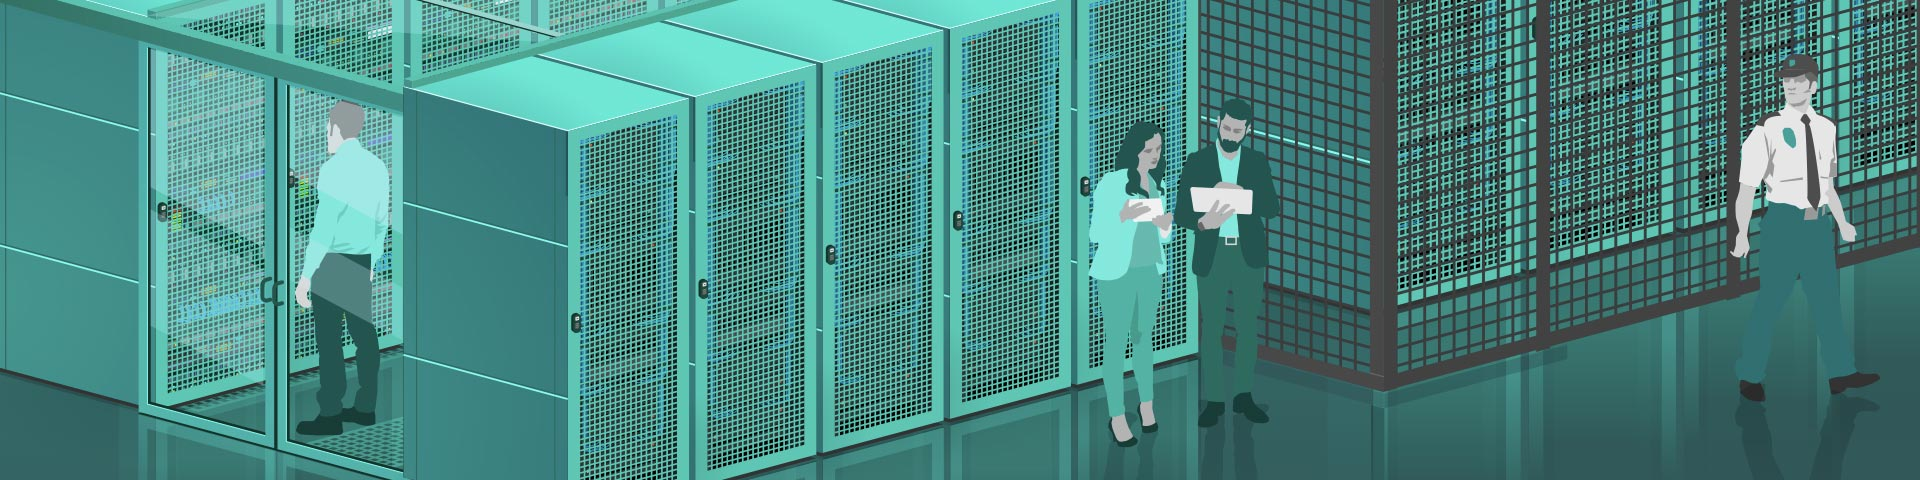 Data centre value added services